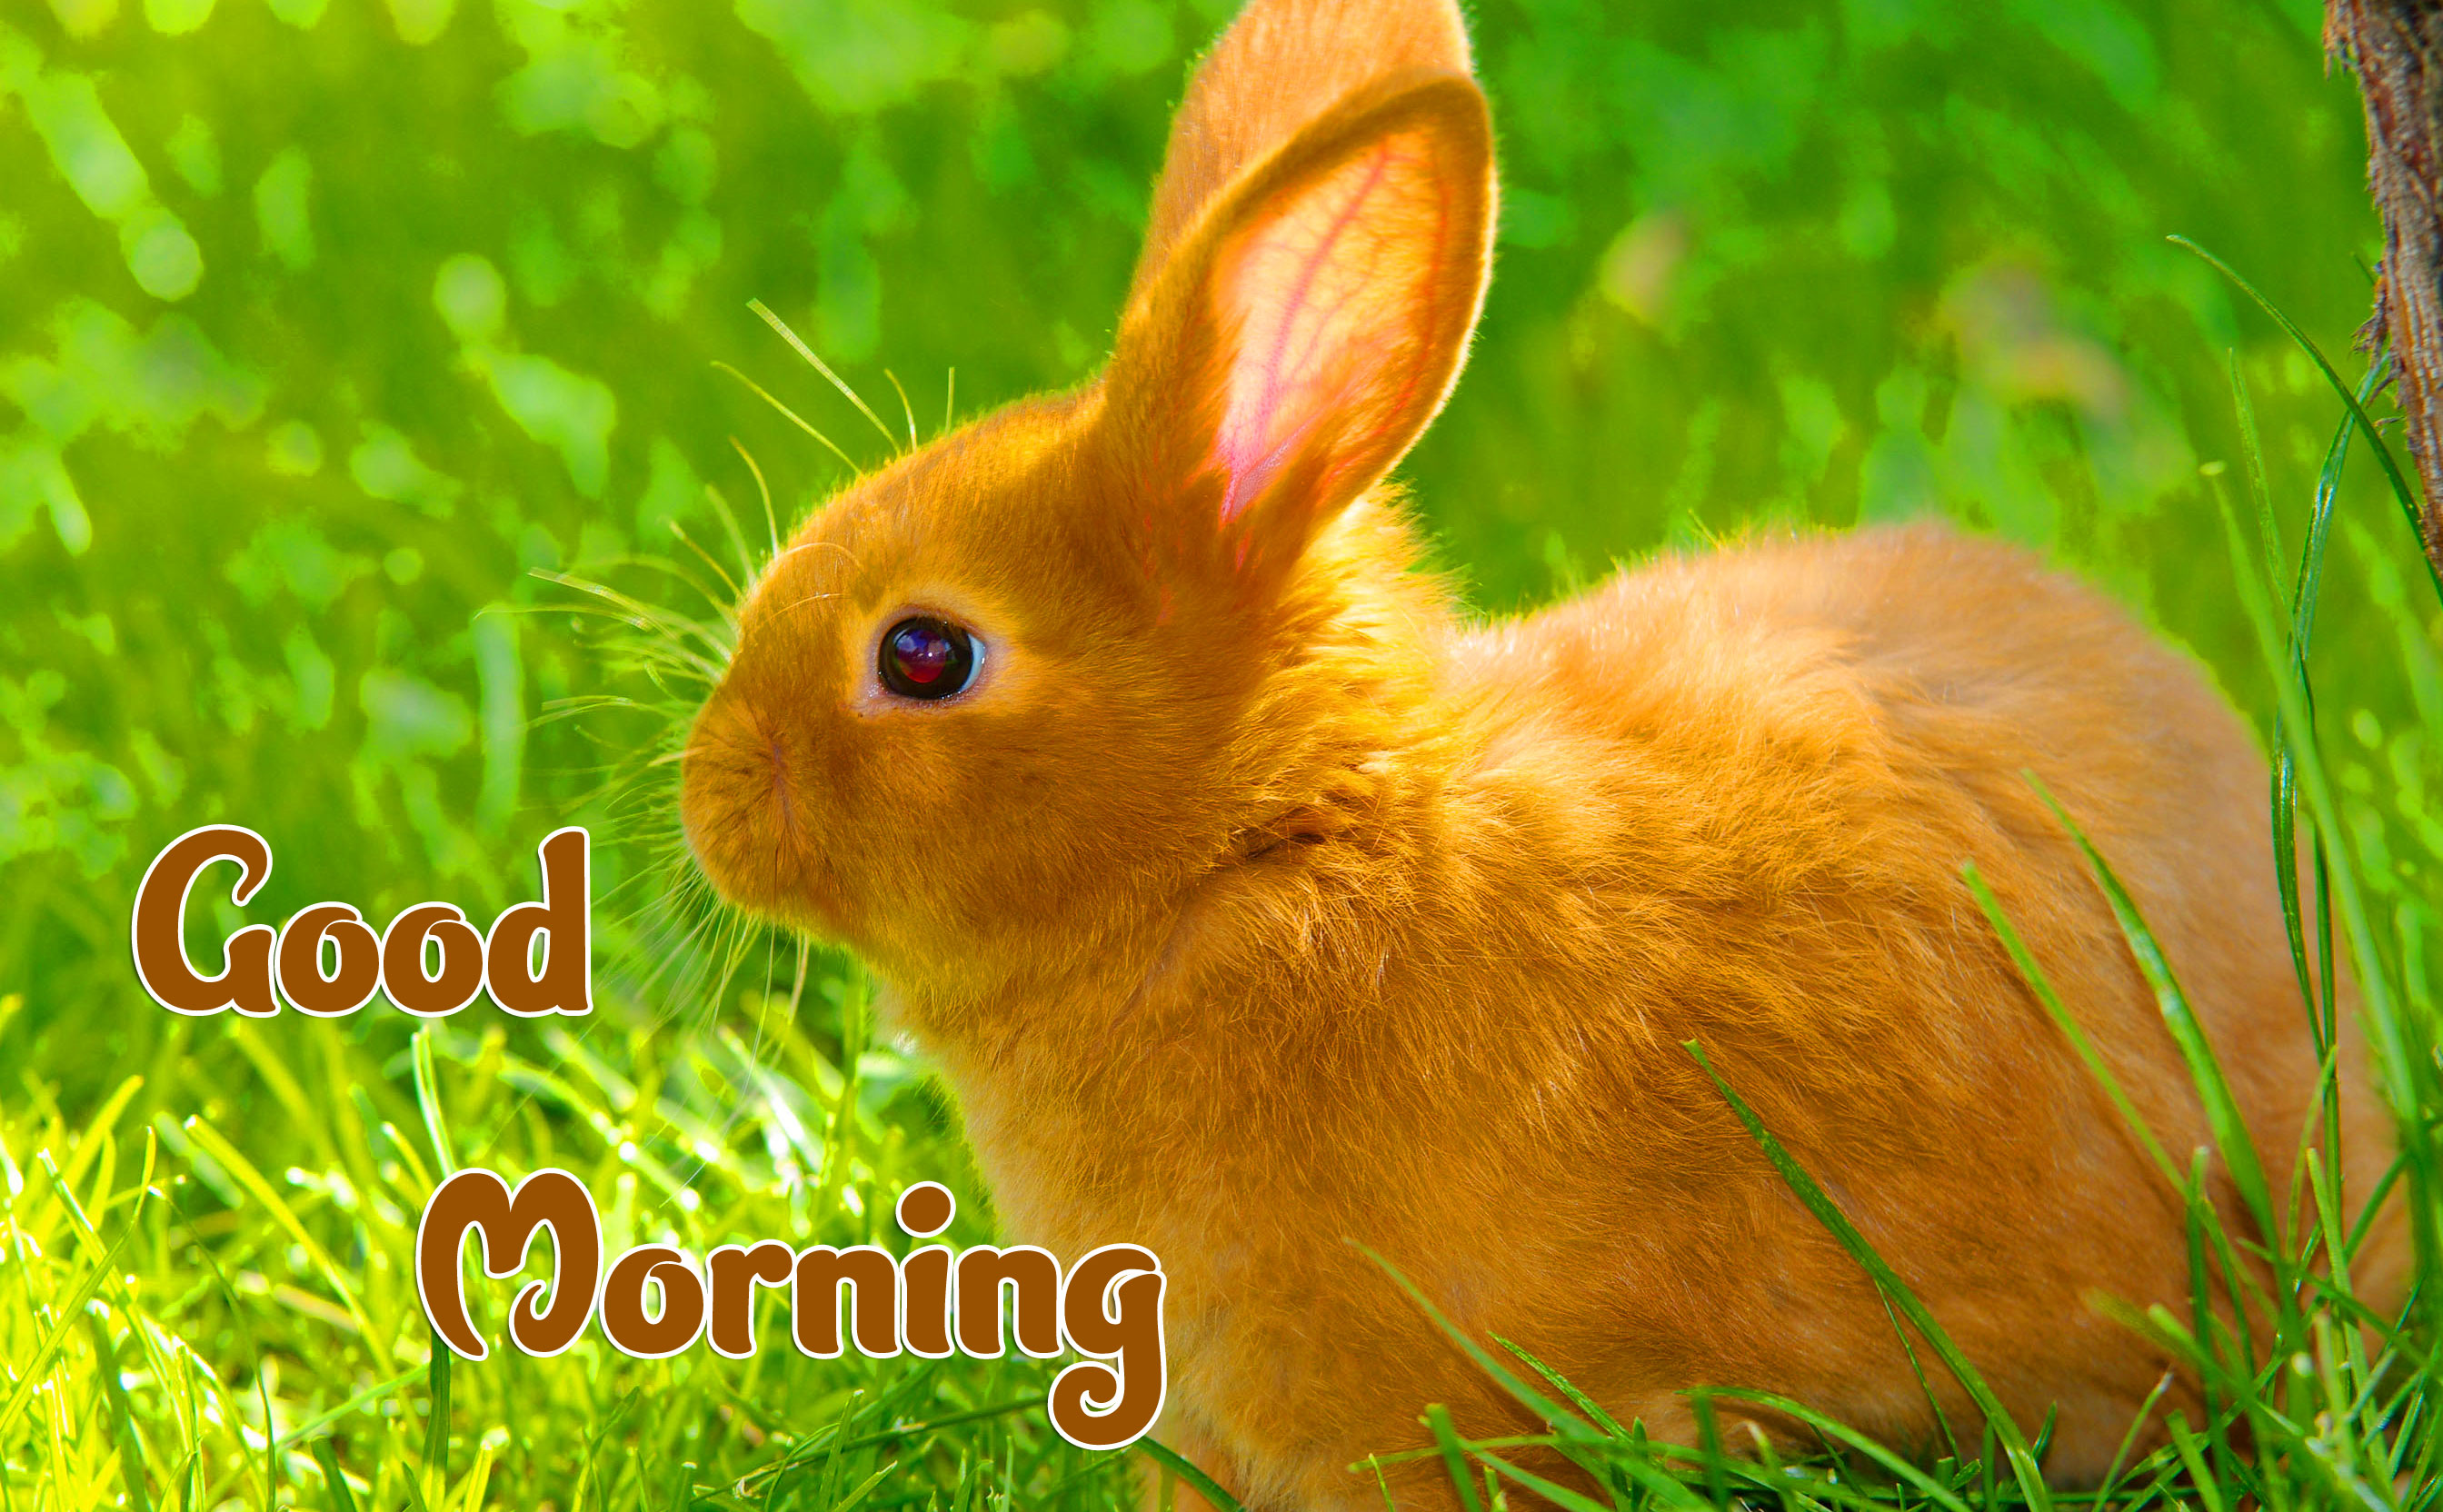 Animal Good morning Wishes Wallpaper pics Free Download